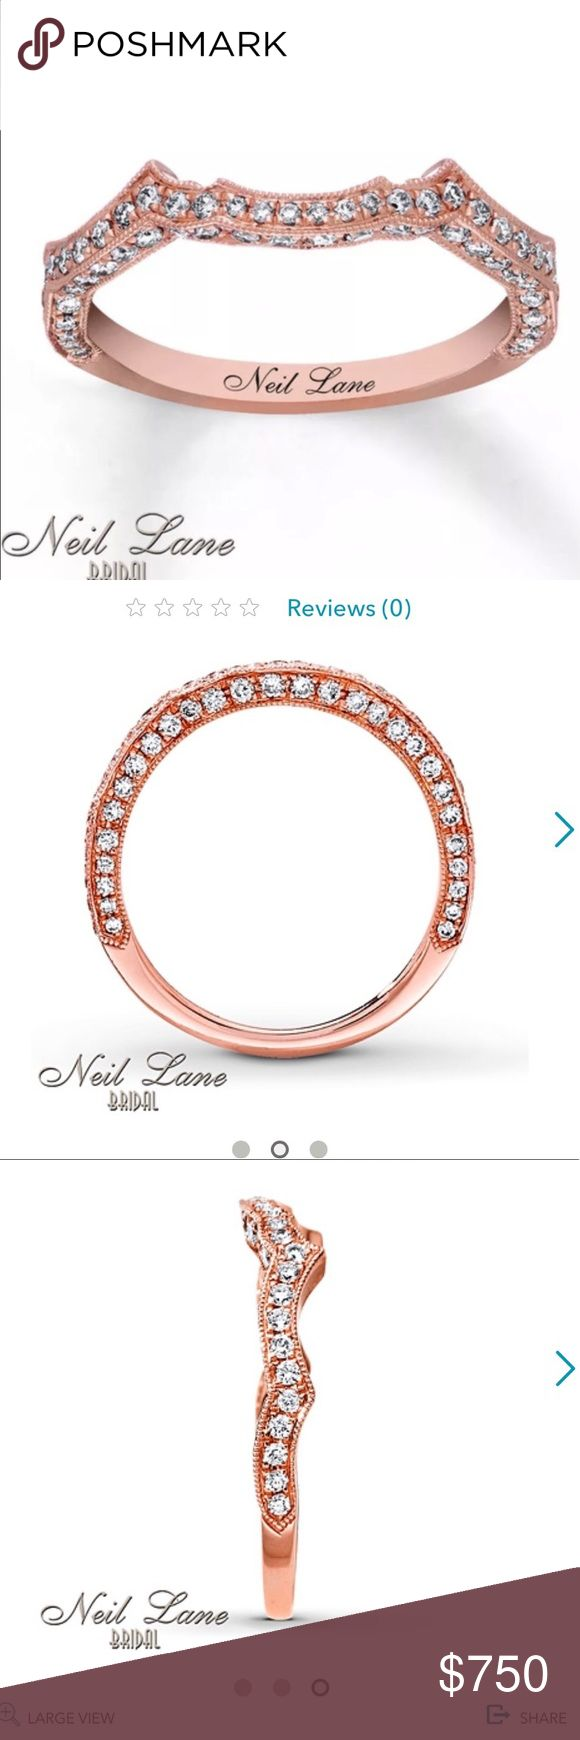 Neil Lane Rose Gold 3/8 carat Wedding Band NEW! Neil Lane Wedding Band 3/8 ct tw Diamonds 14K Rose Gold Contours of 14K rose gold shimmer with round white diamonds in this vintage-inspired wedding band for her from Neil Lane Bridal®. The ring has a total diamond weight of 3/8 carat and is designed to fit alongside the matching engagement ring (sold separately). Neil Lane's signature appears on the inside of the band. Diamond Total Carat Weight may range from .37 - .44 carats. Neil Lane…